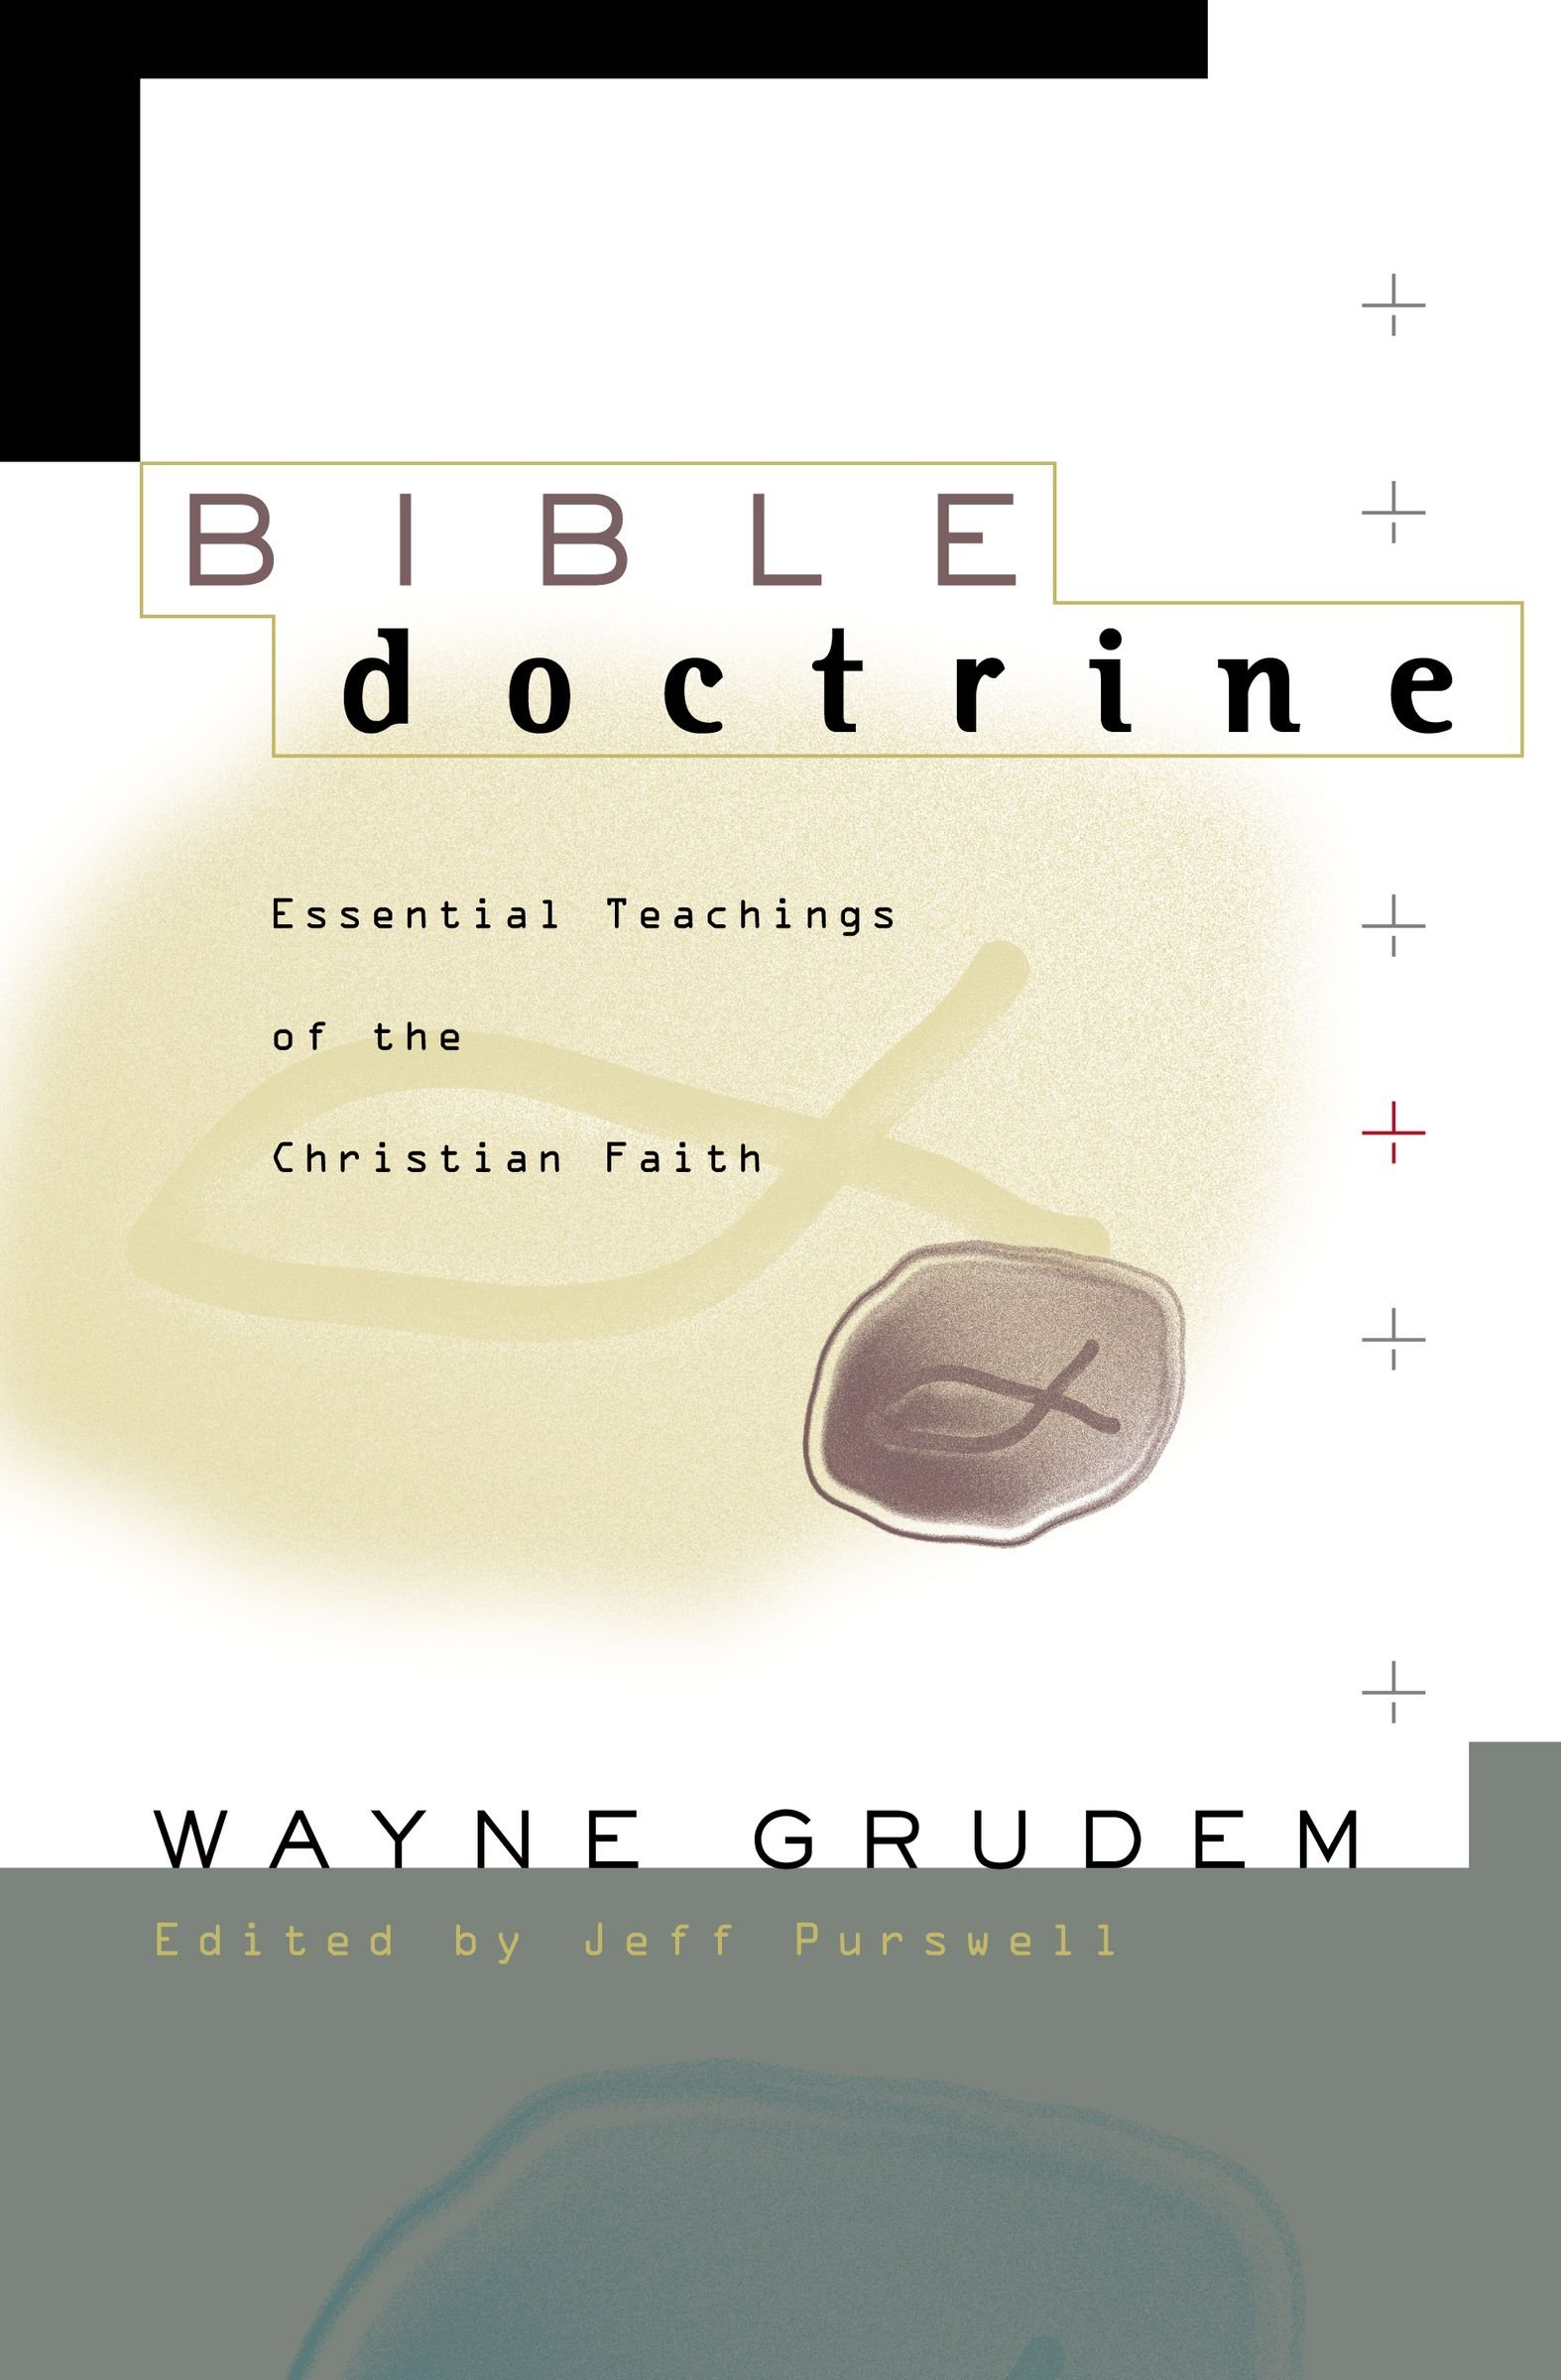 BIBLE DOCTRINE PART 1 CLASS - Based on a book by Wayne Grudem, this will be a systematic theology class for Christians who want to grow deeper in their understanding of what the Bible teaches. The class will focus on seven main sections: The Doctrine of the Word of God, The Doctrine of God, The Doctrine of Man, The Doctrine of Christ, The Doctrine of the Application of Redemption, The Doctrine of the Church, The Doctrine of the Future. Tuesdays 5:30pm-6:30pm Cost: $30